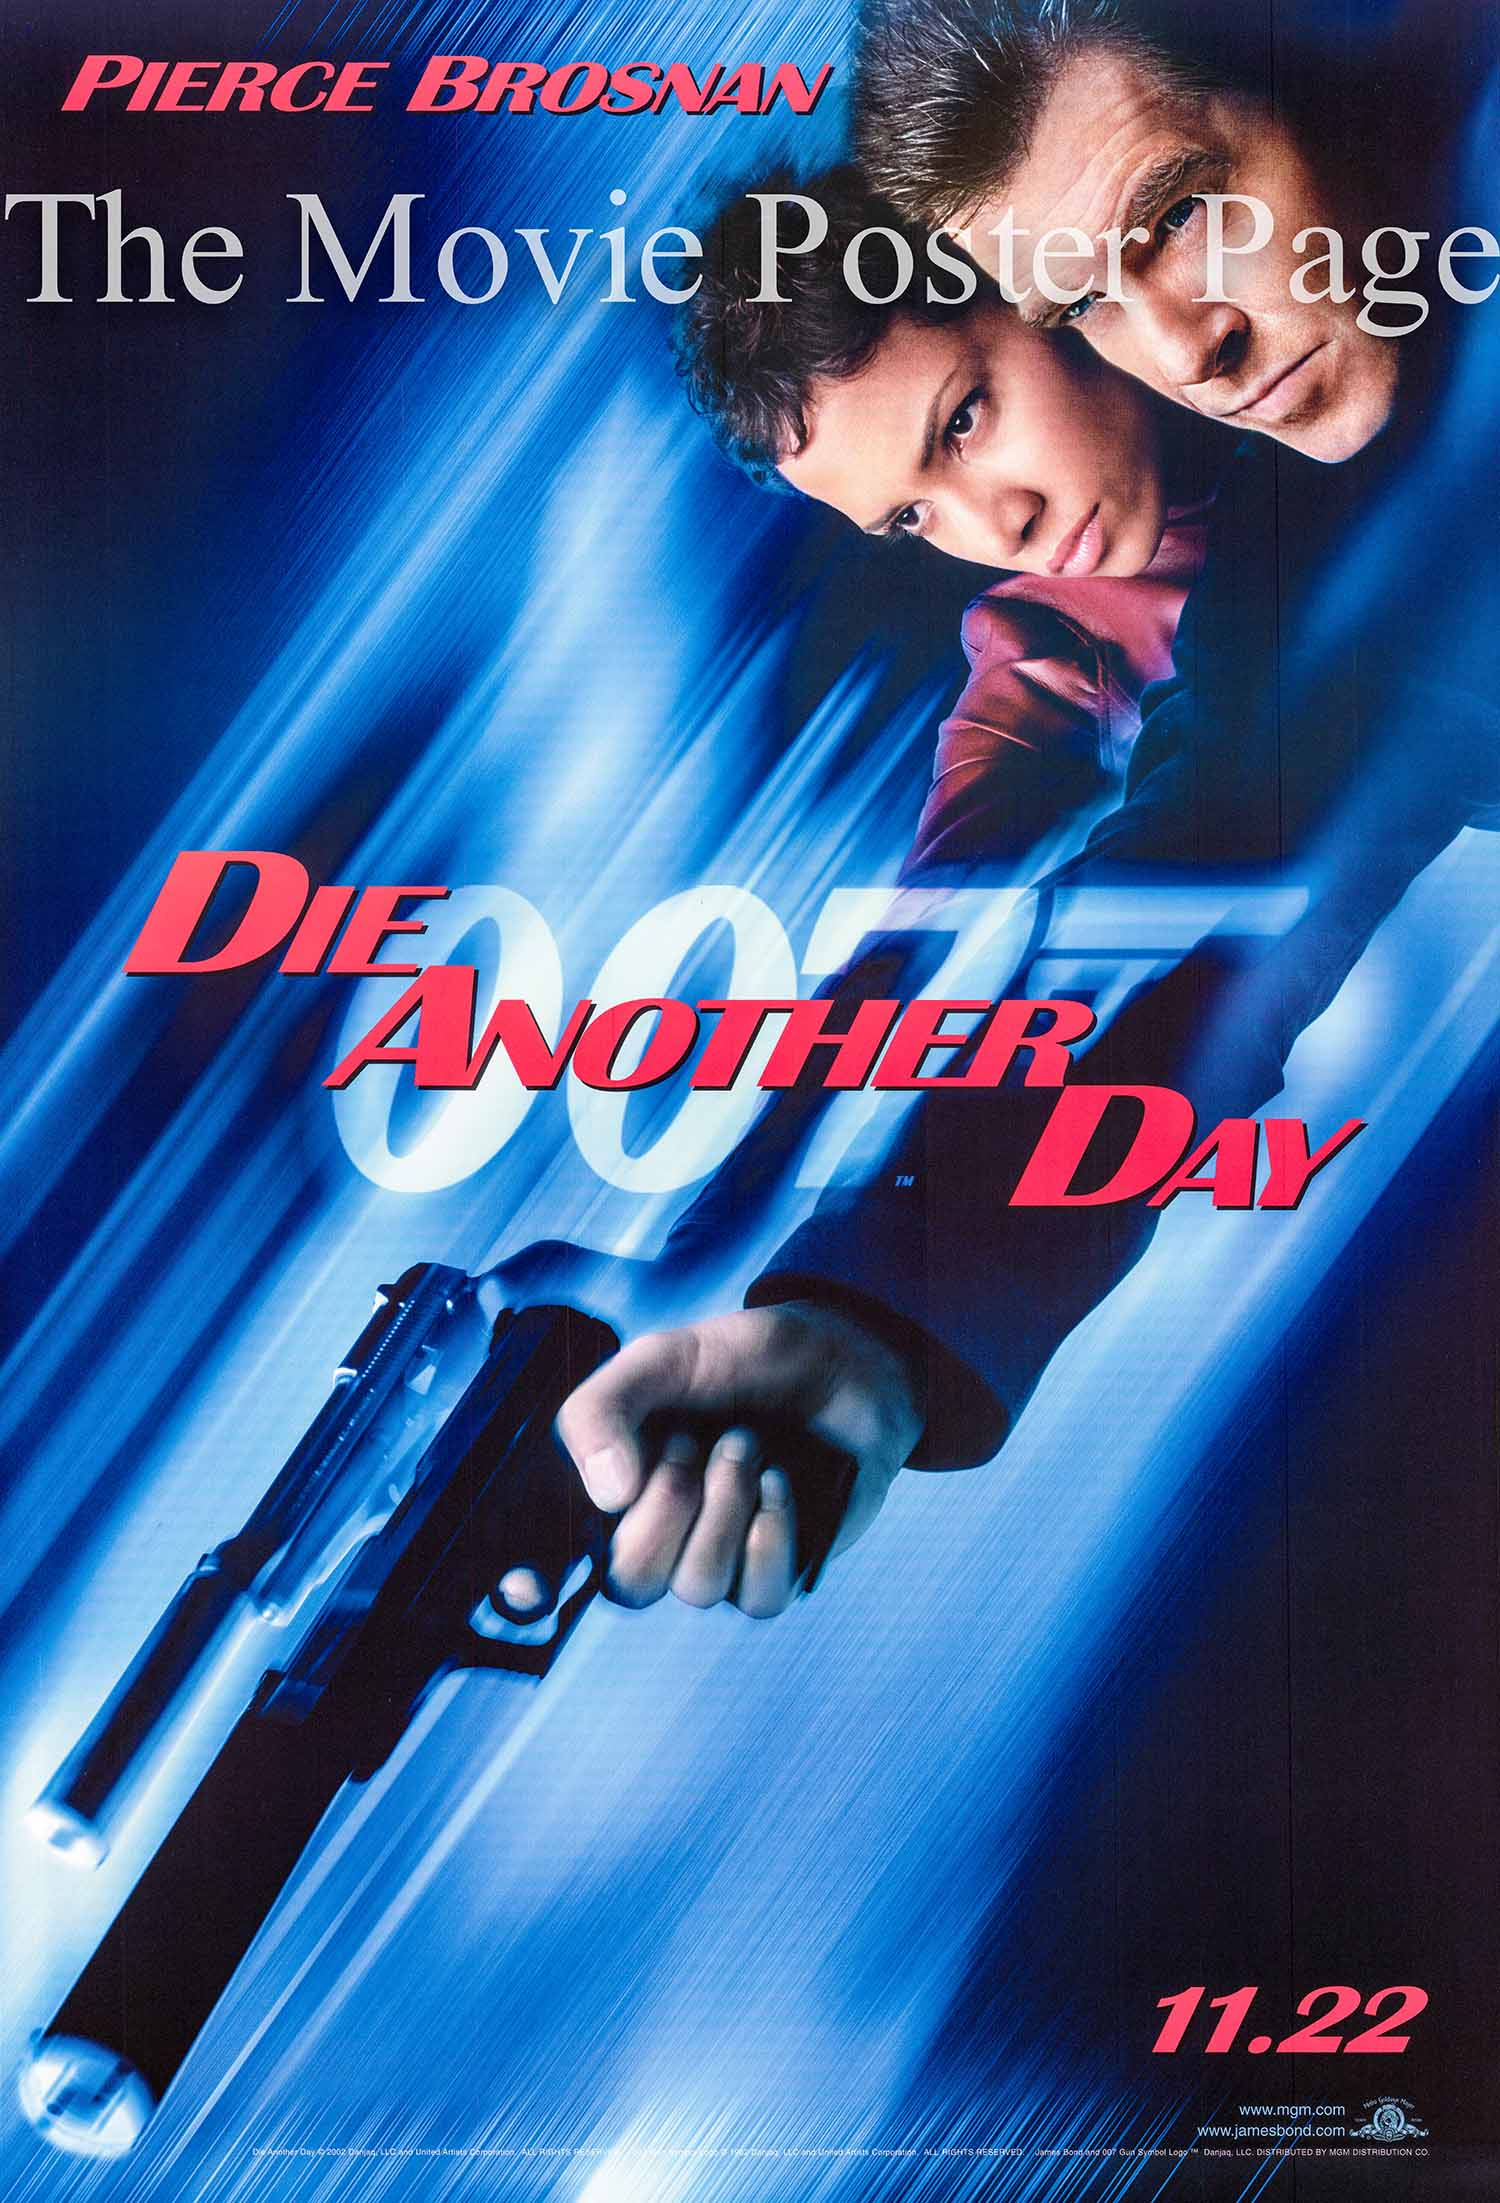 Pictured is a style B advance one-sheet poster made to promote the 2002 Lee Tamahori film Die another Day starring Pierce Brosnan as James Bond.